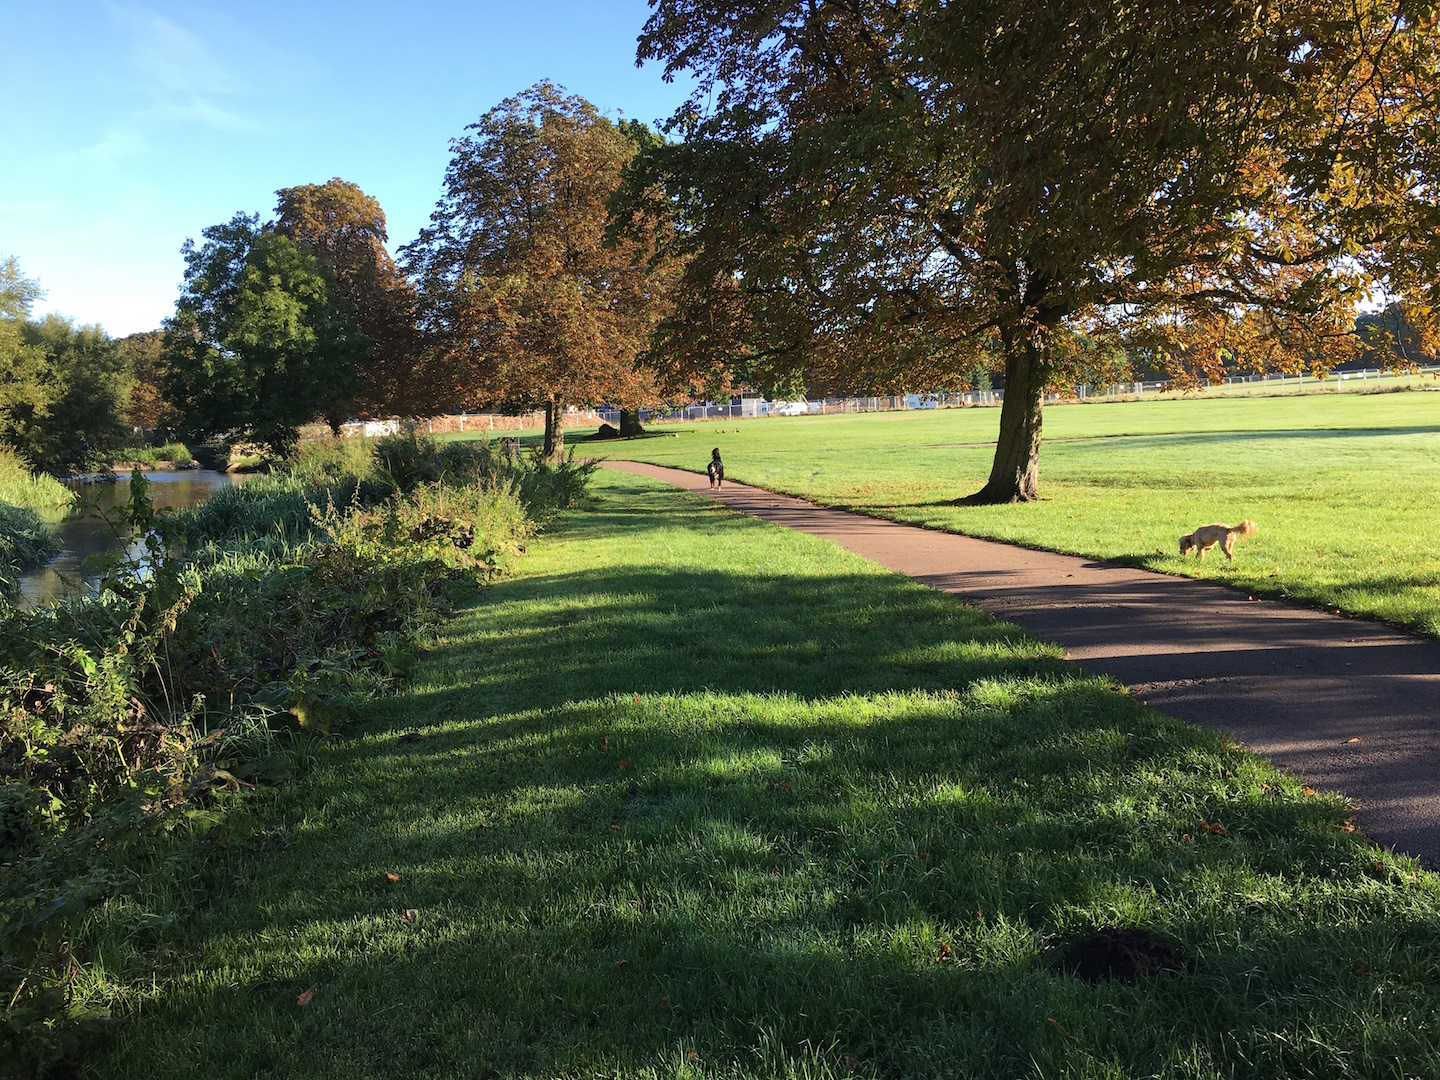 One thing I can enjoy without fail, however, is walking my dogs in the Autumnal morning sunshine